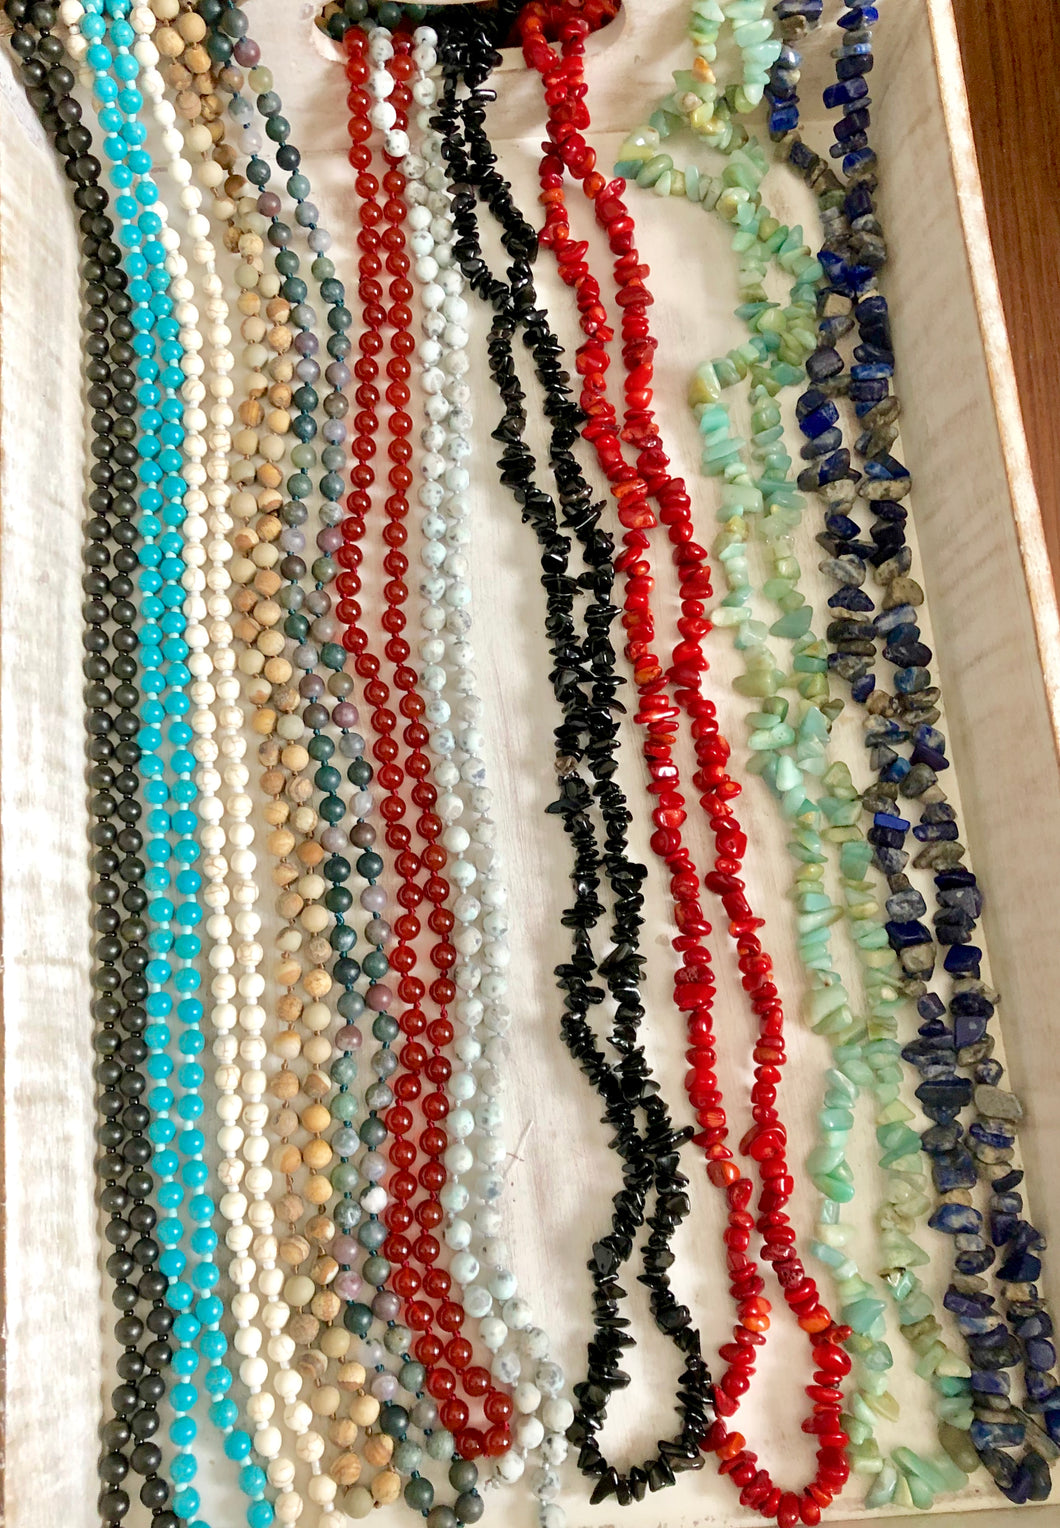 Chipped Gemstone Beaded Necklaces- 5 choices